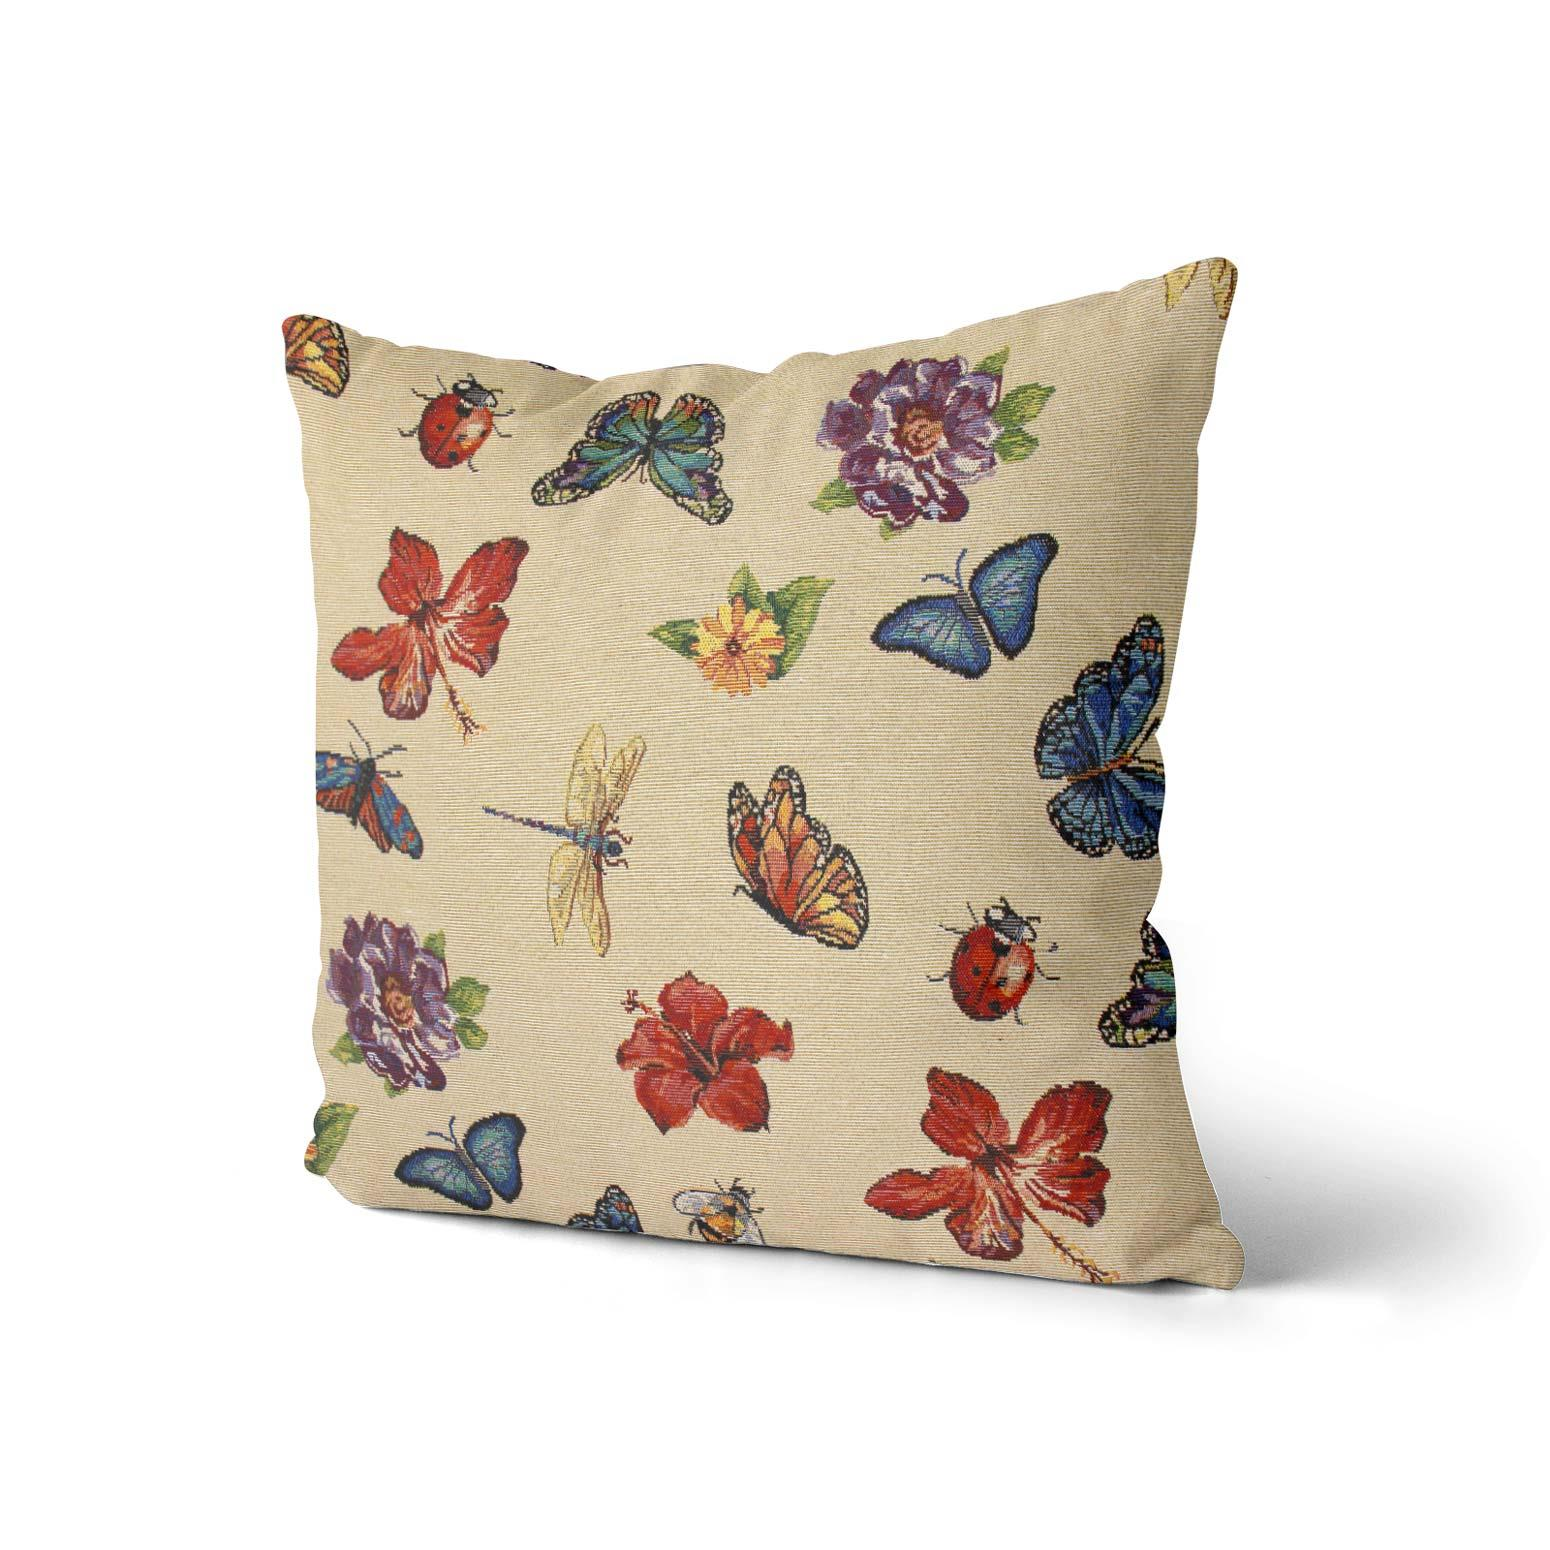 Tapestry-Cushion-Covers-Vintage-Pillow-Cover-Collection-18-034-45cm-Filled-Cushions thumbnail 109